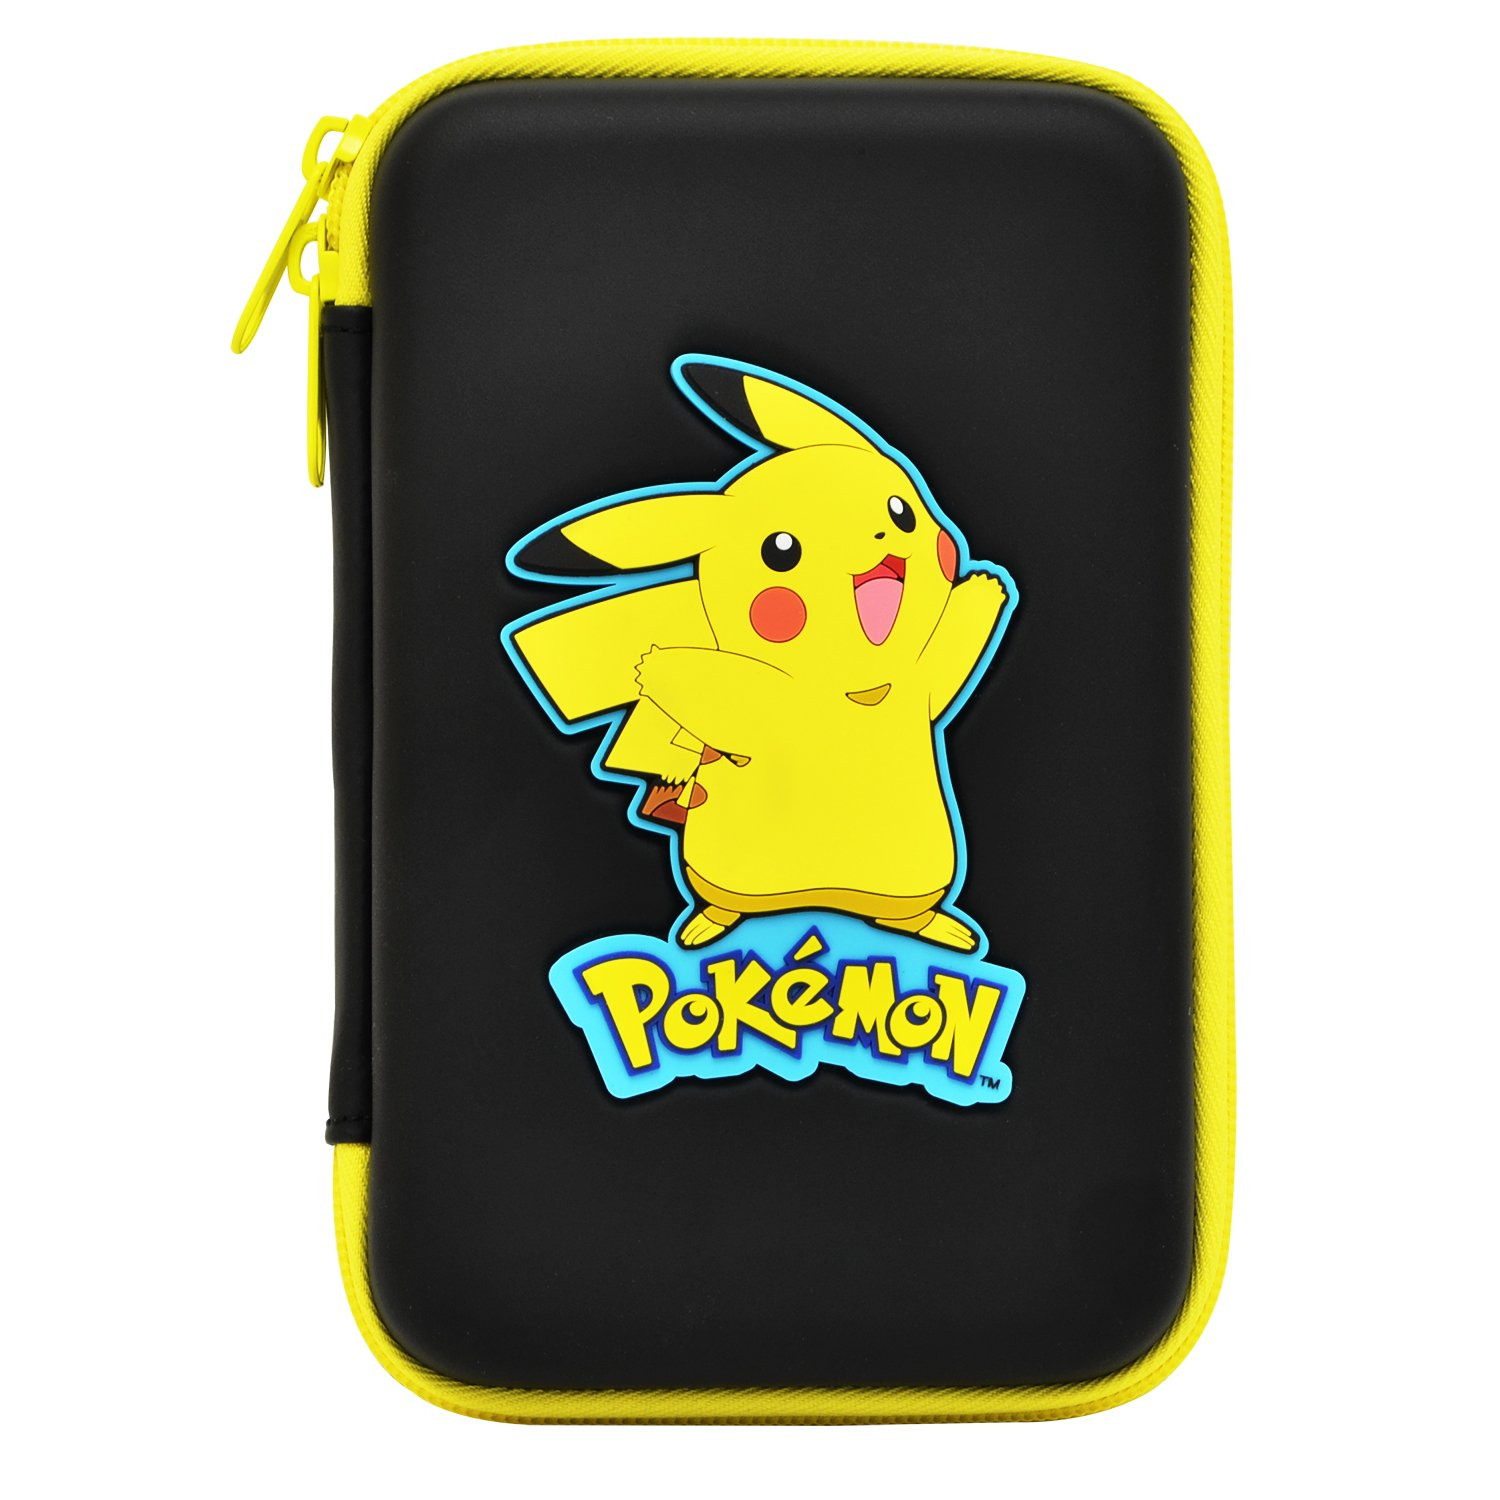 Officially Licensed By Nintendo  Featuring Tactile Rubber Pikachu Artwork   Holds One New 3ds Xl, 3ds Xl, 3ds, Dsi, Or Dsi Xl System (not Included),